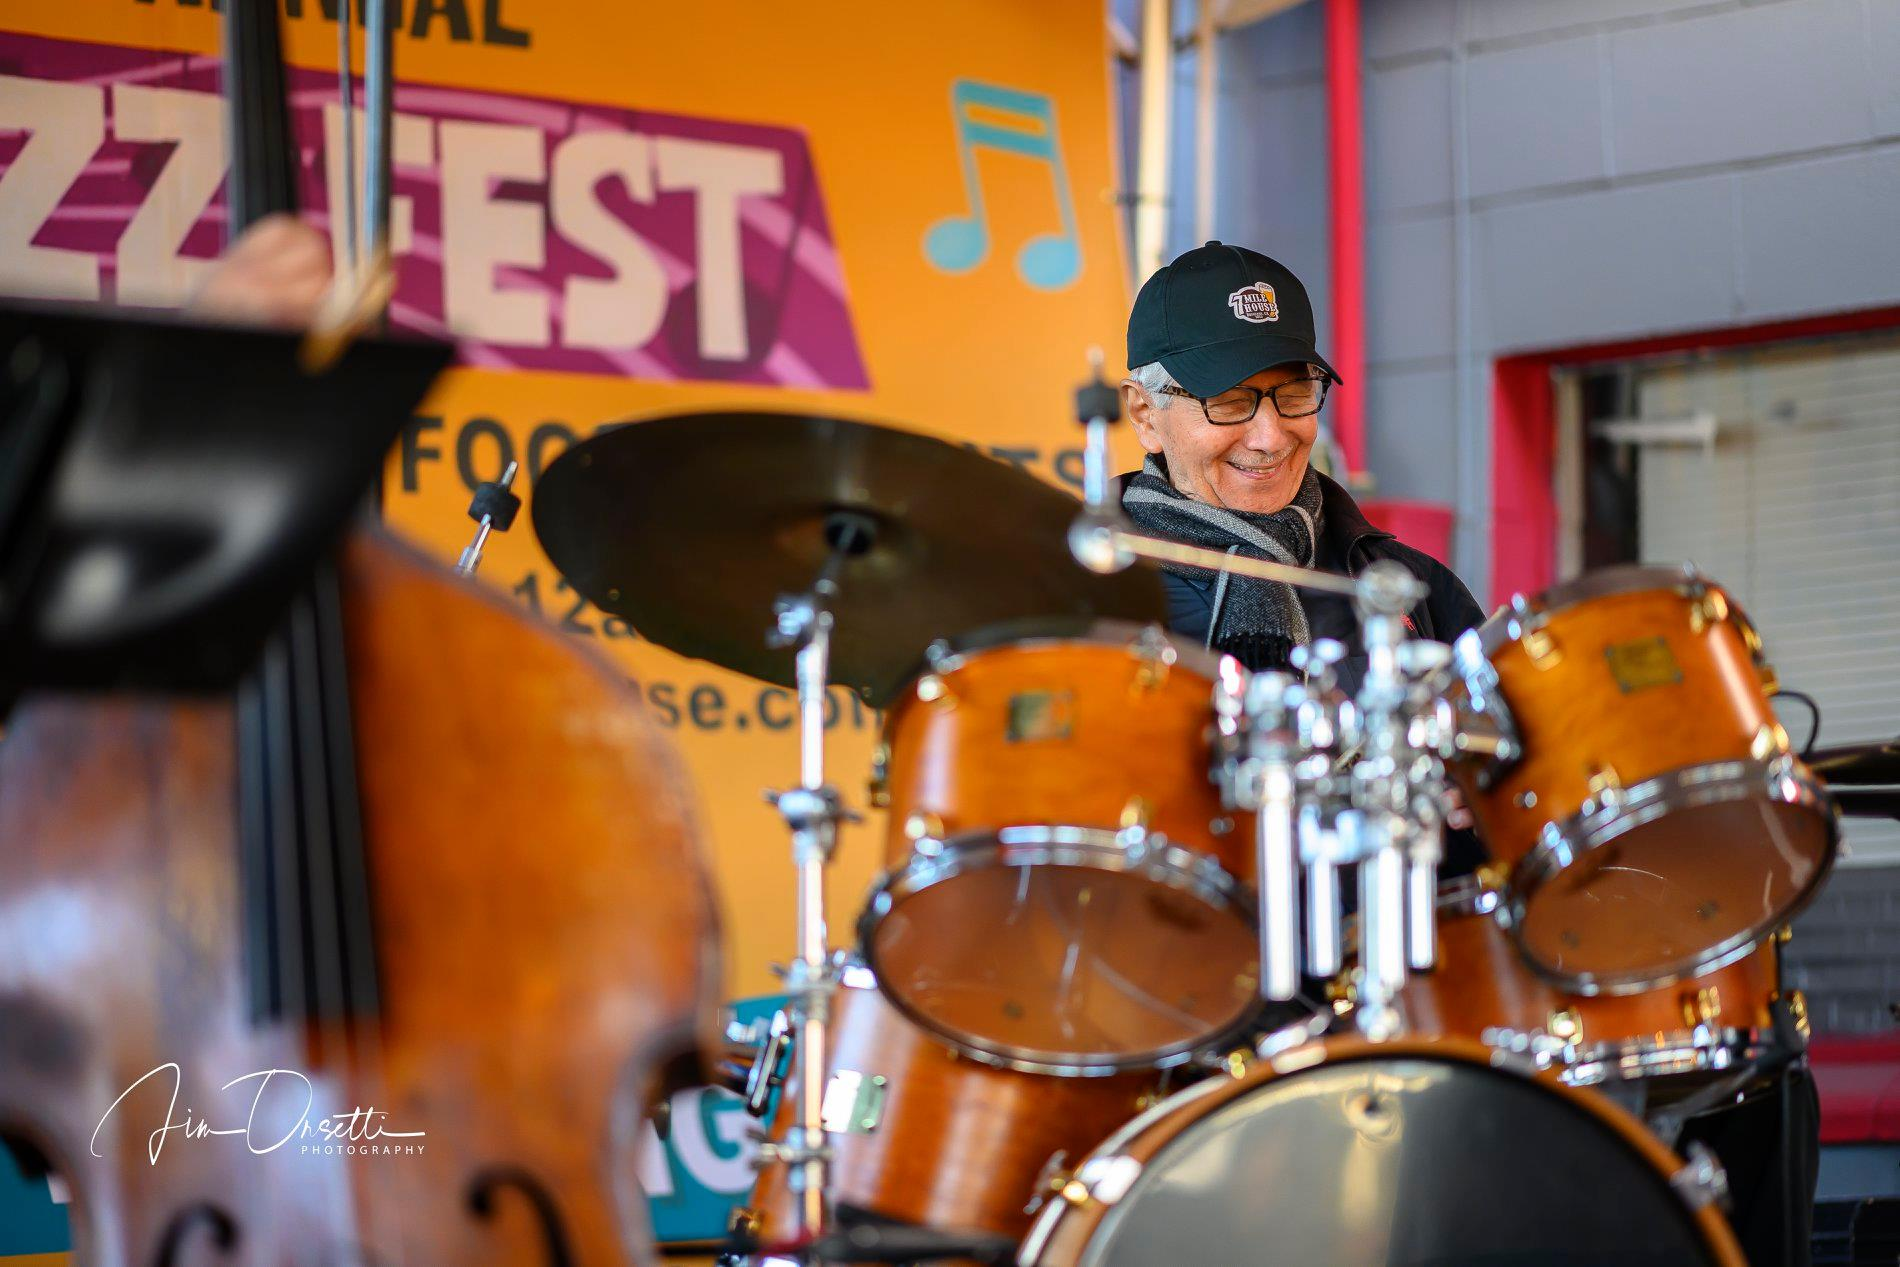 Vince Lateano, 2018 Awardee Outstanding Jazz Musician, at the 2nd Annual 7 Mile House Jazz Fest 2019